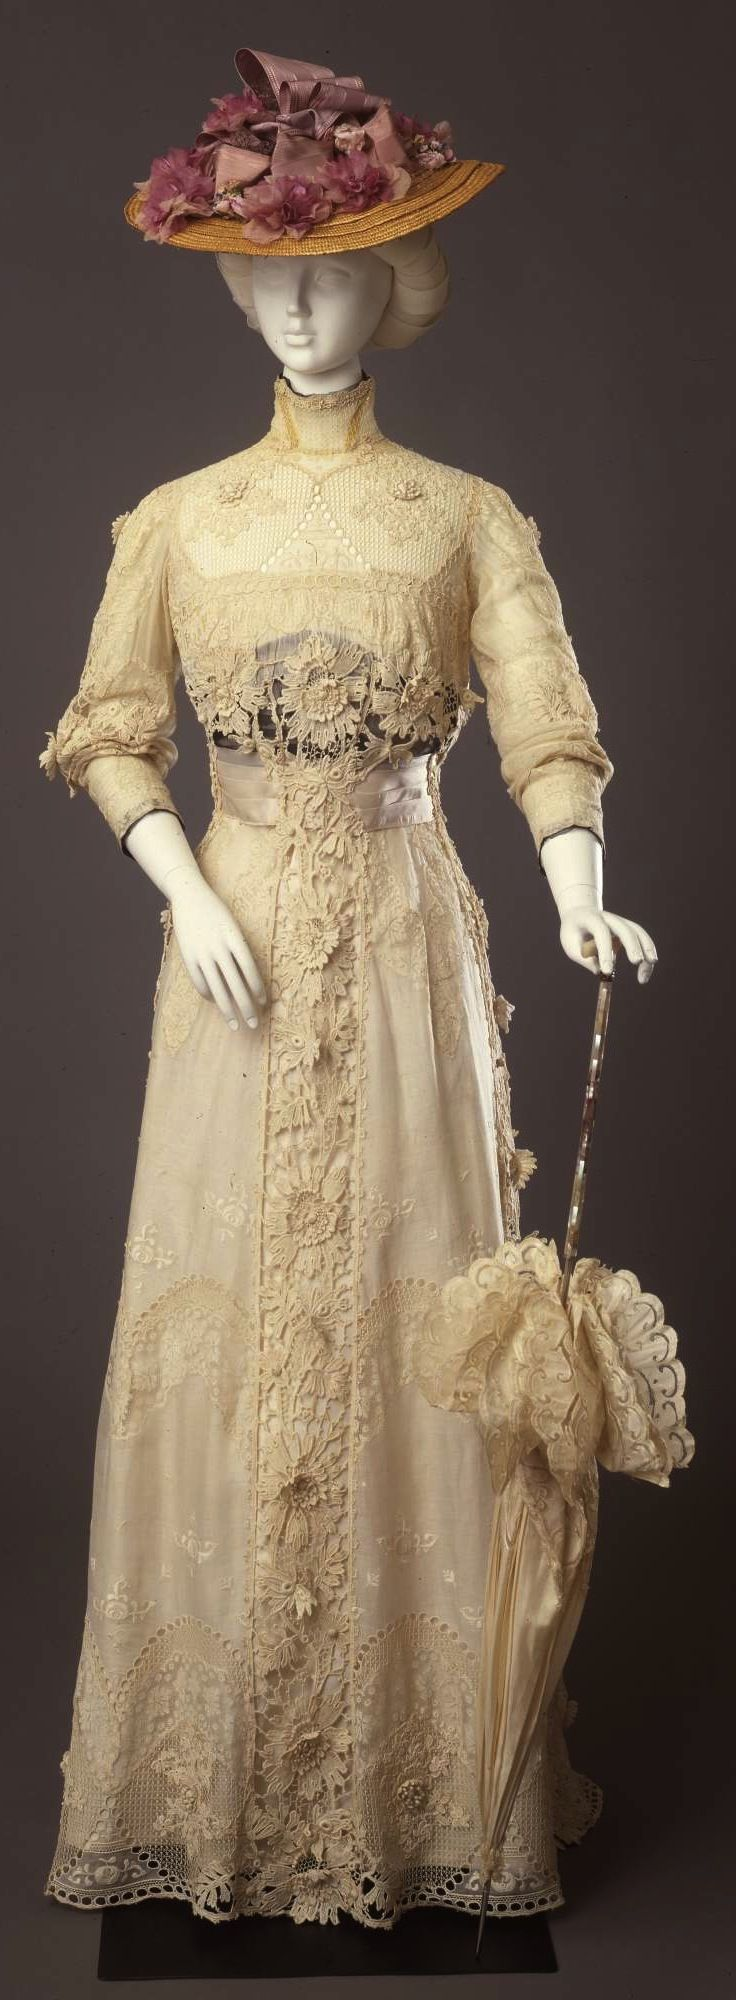 Day dress with lace applications, by Sartoria Ida Giraldi Masolini, Florence, c. 1910, at the Pitti Palace Costume Gallery. Via Europeana Fashion.